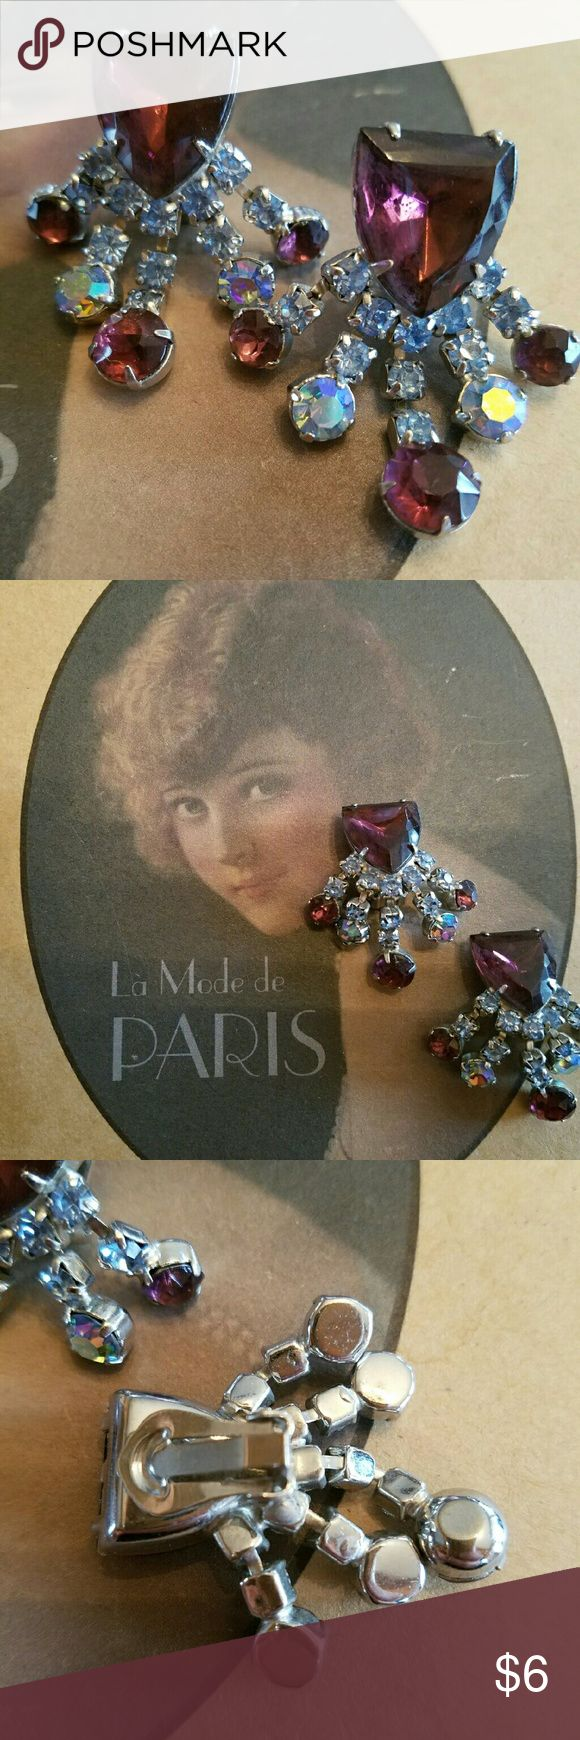 """She never danced alone"" Vintage clip-on earrings. Large cranberry colored crystals and ab crystals make these sparkle. Silver setting. Earrings measure approc 1 1/2"" from top to bottom. All stones intact. Jewelry Earrings"